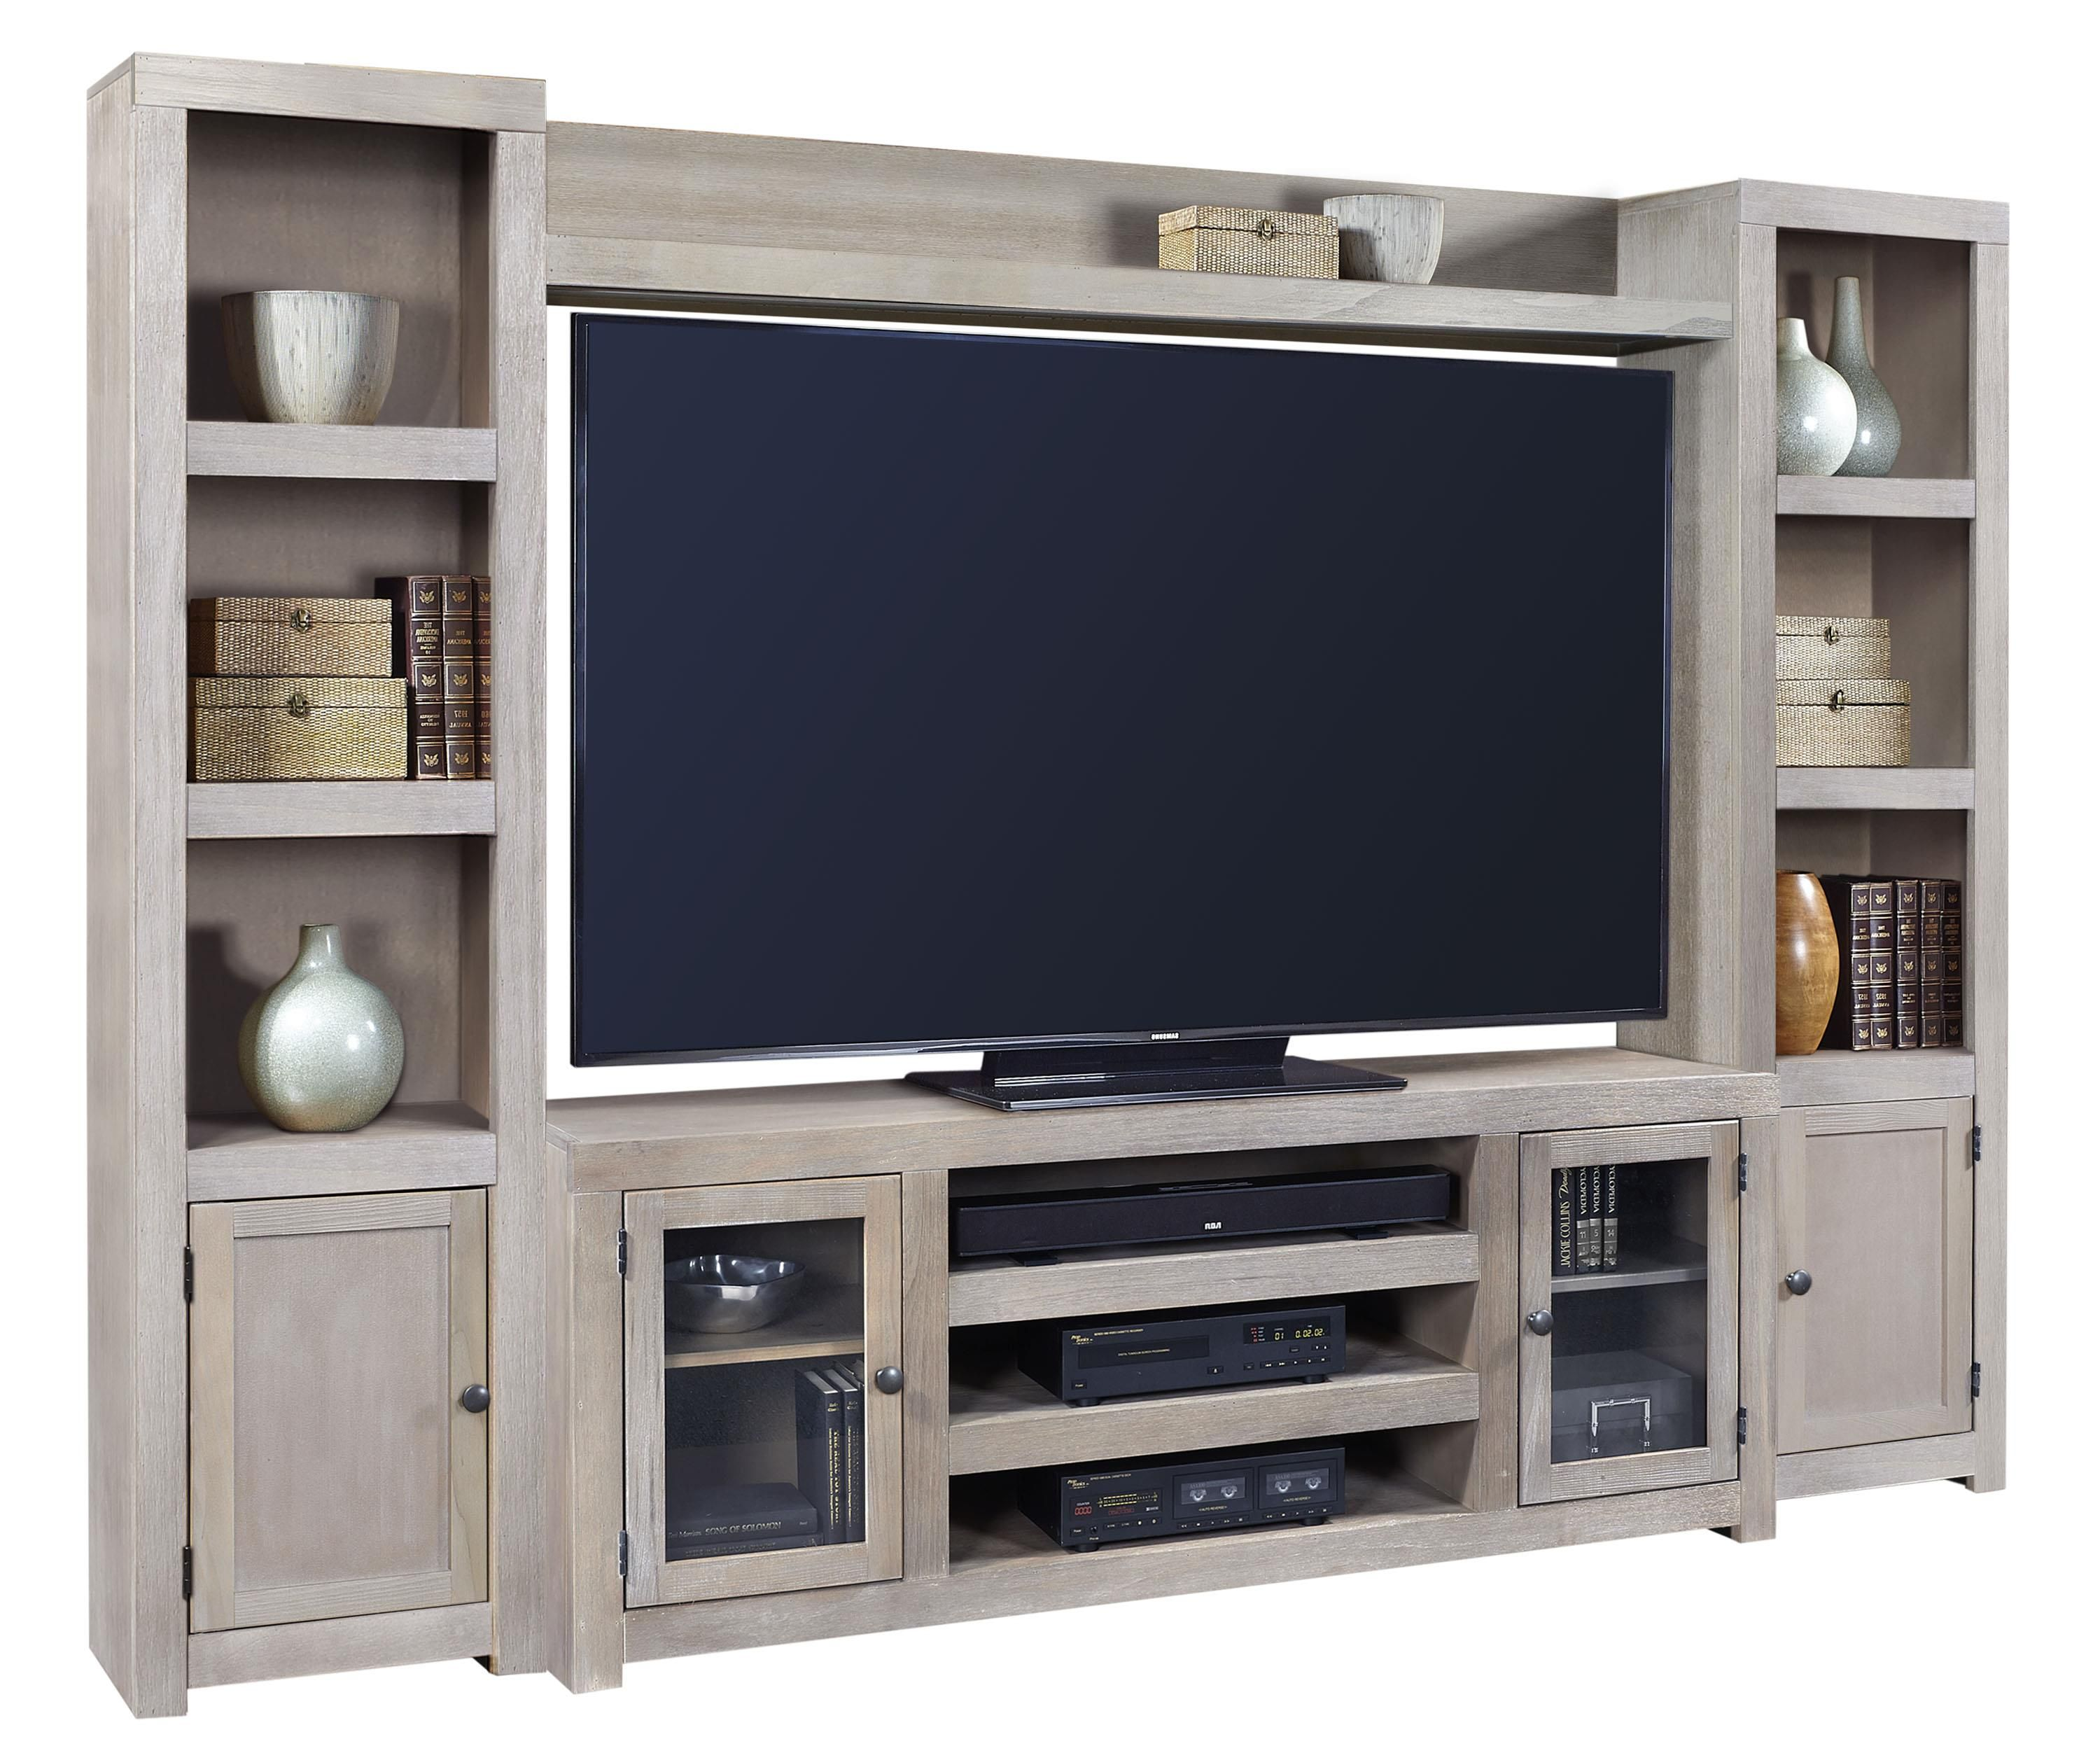 Contemporary driftwood entertainment wall with doors and open